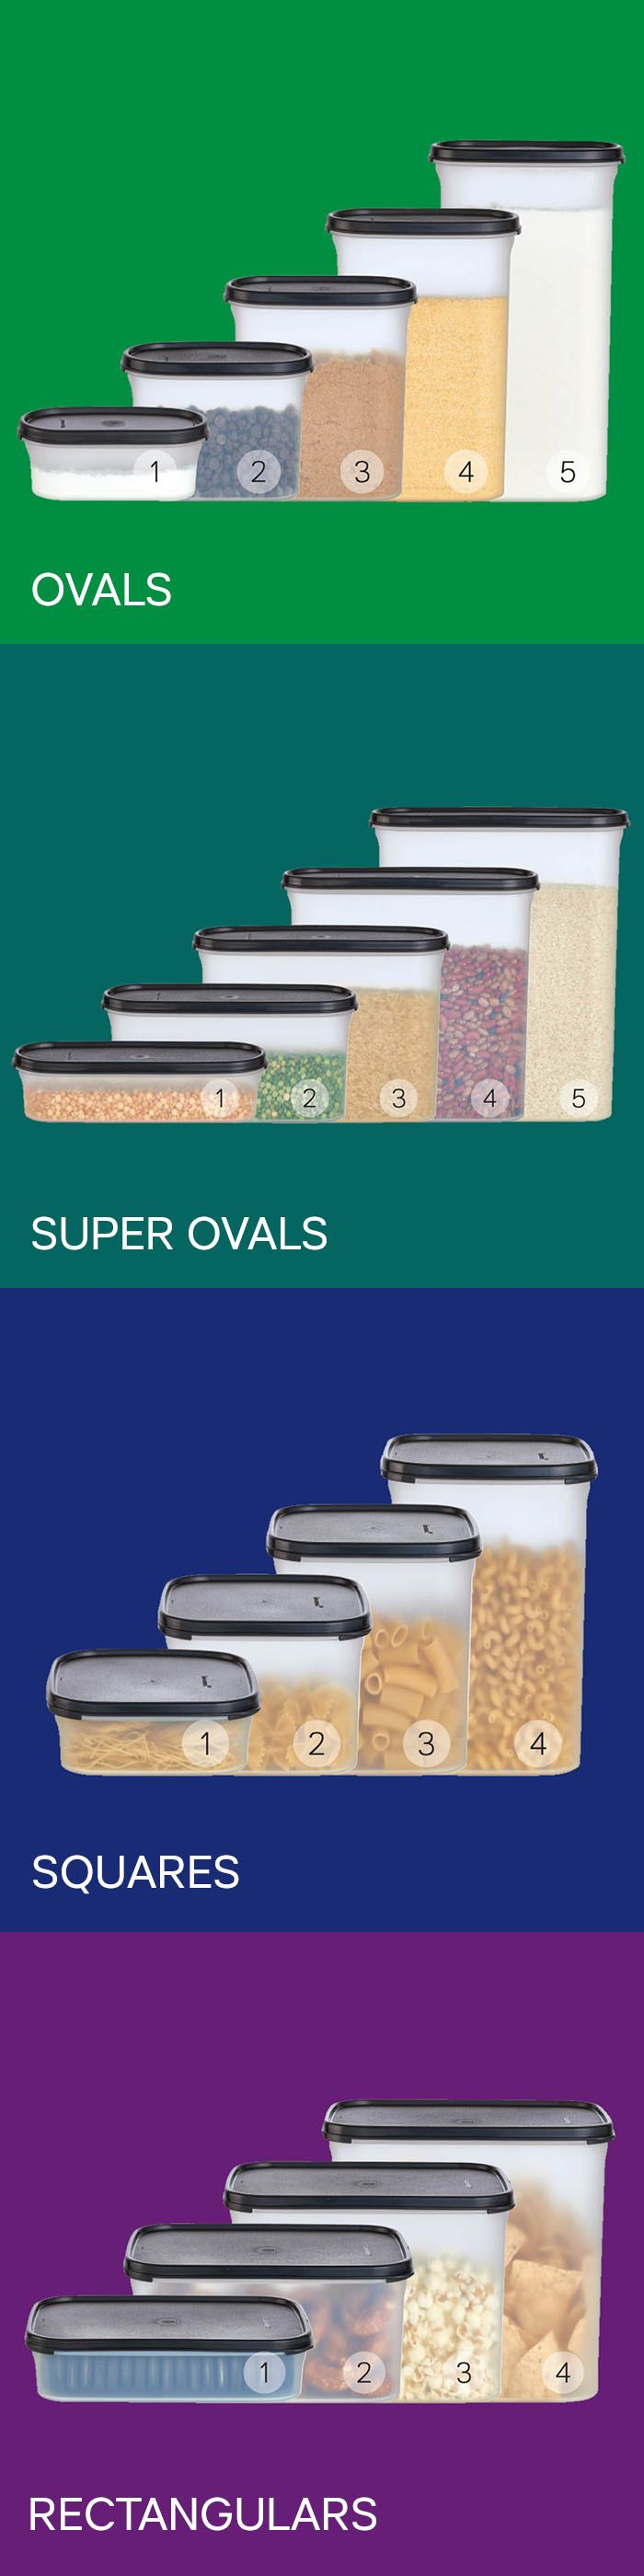 Modular Mates® containers. Cut waste and save money. Spill-proof seals to keep food extra fresh, extra long. Ovals & Squares for shallow spaces and Super Ovals & Rectangulars for deep.